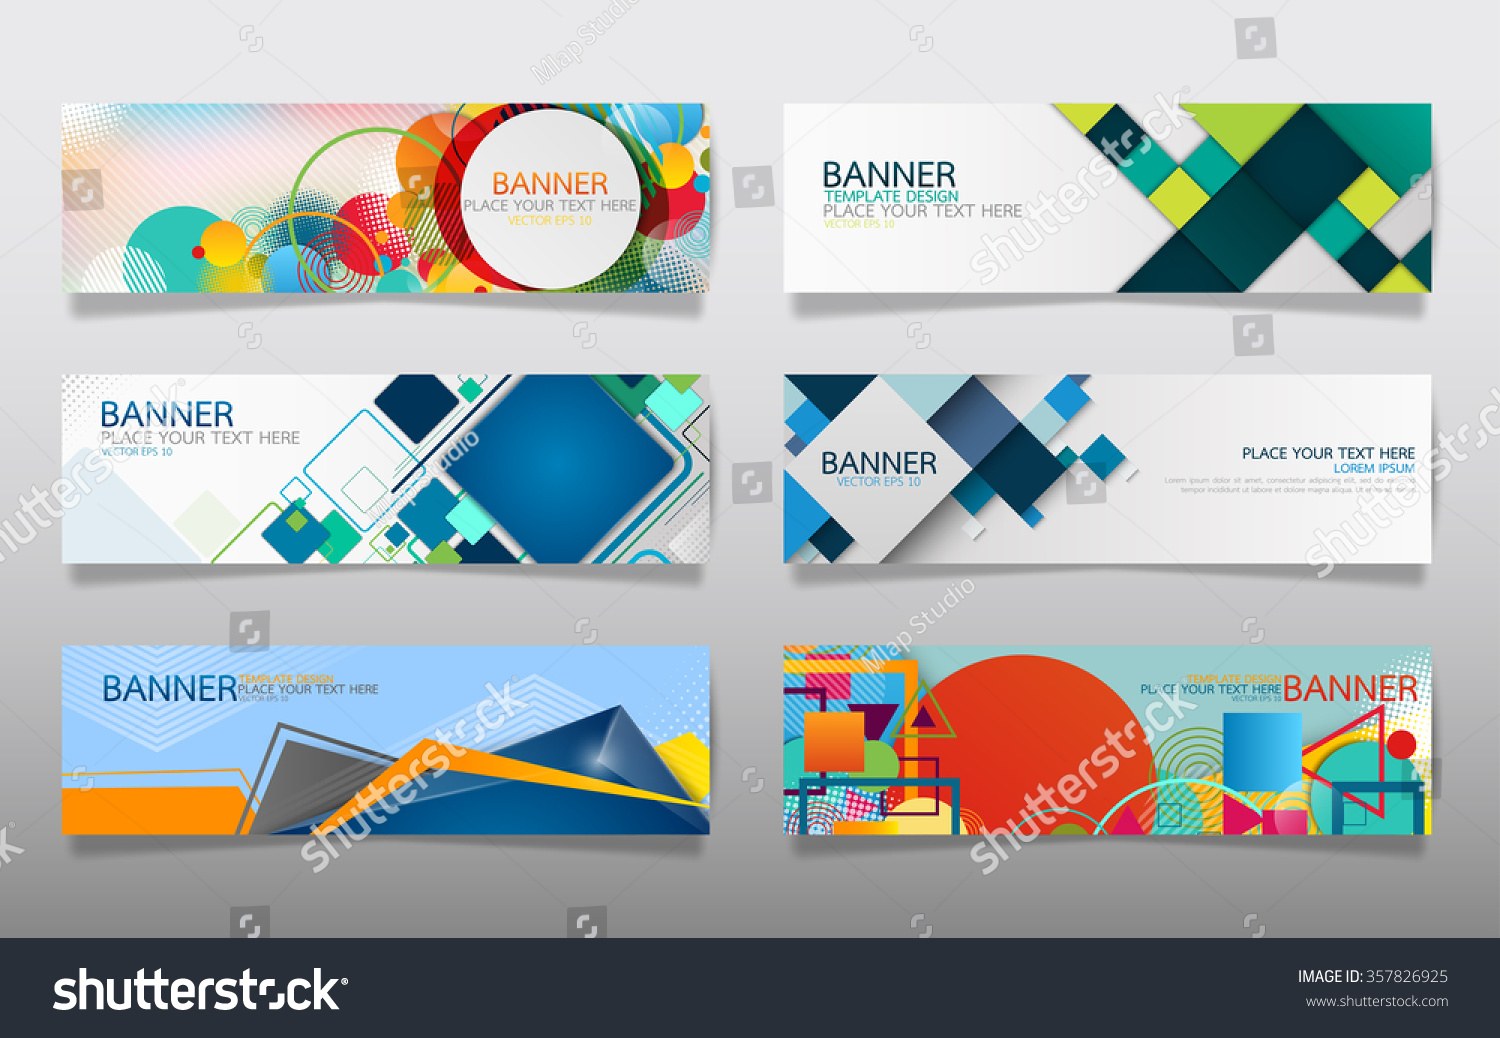 business banner design template vector geometric stock vector